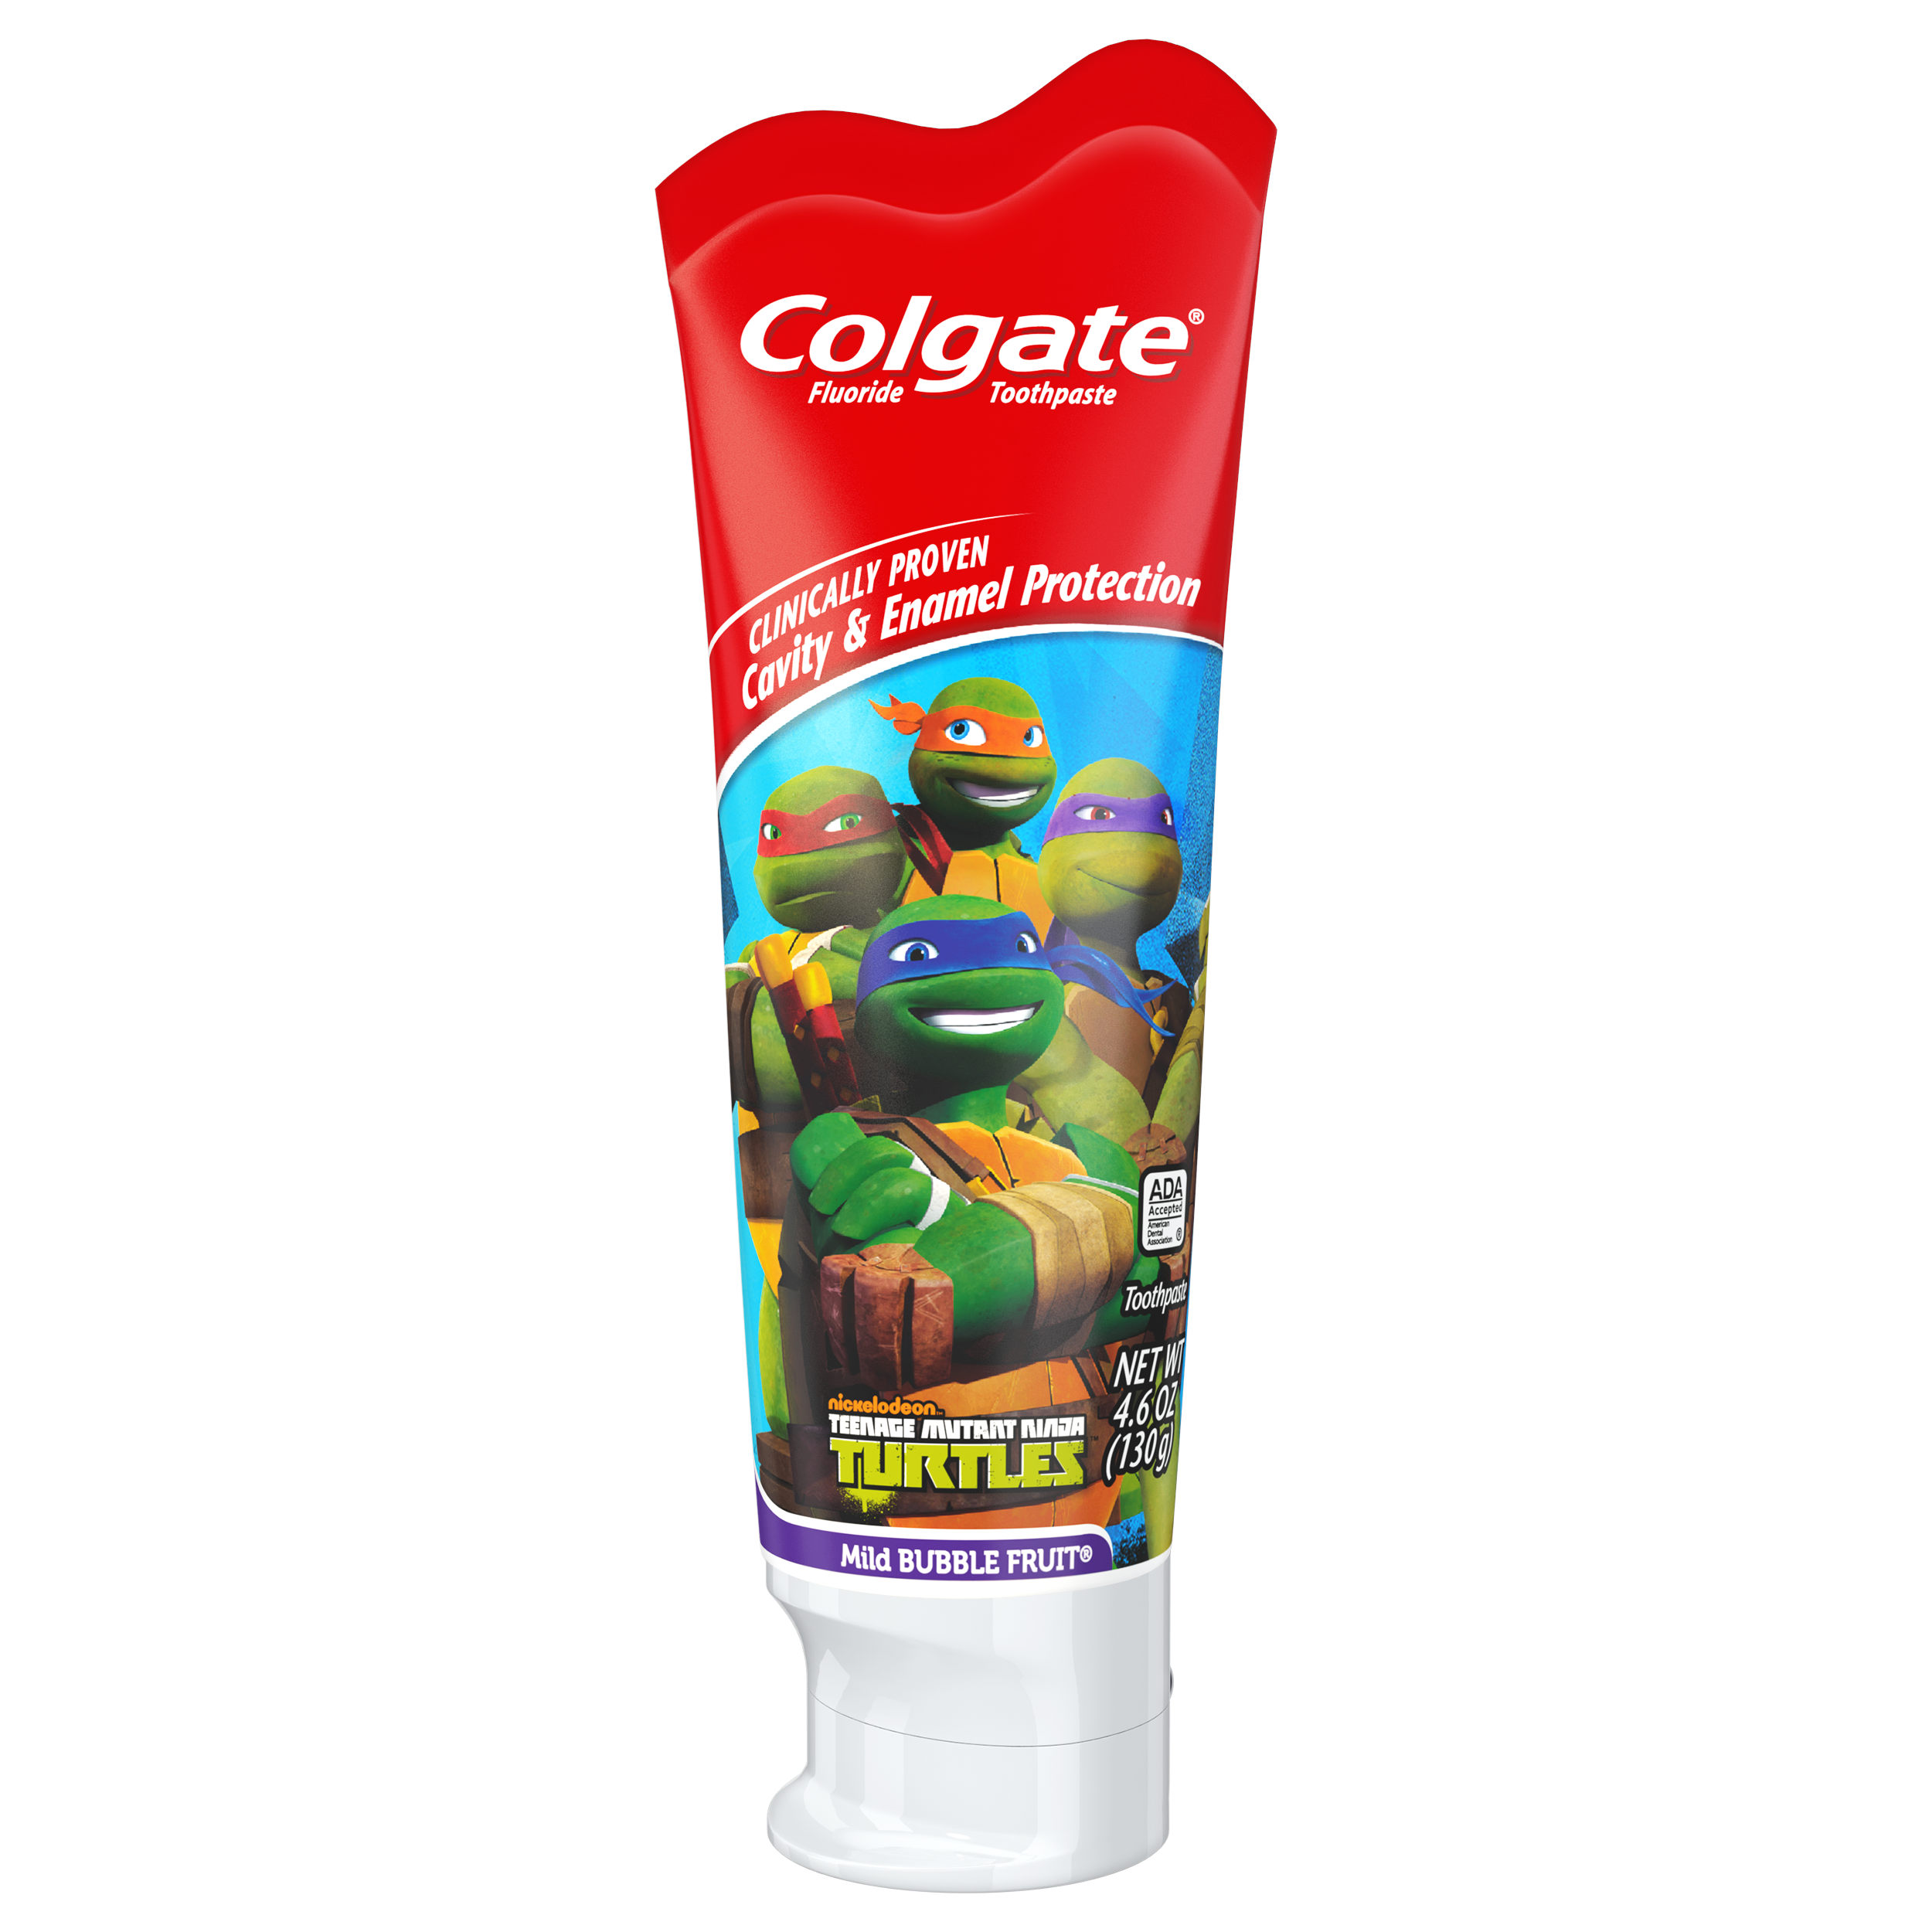 Colgate Kids Fluoride Toothpaste, Teenage Mutant Ninja Turtles - 4.6 ...